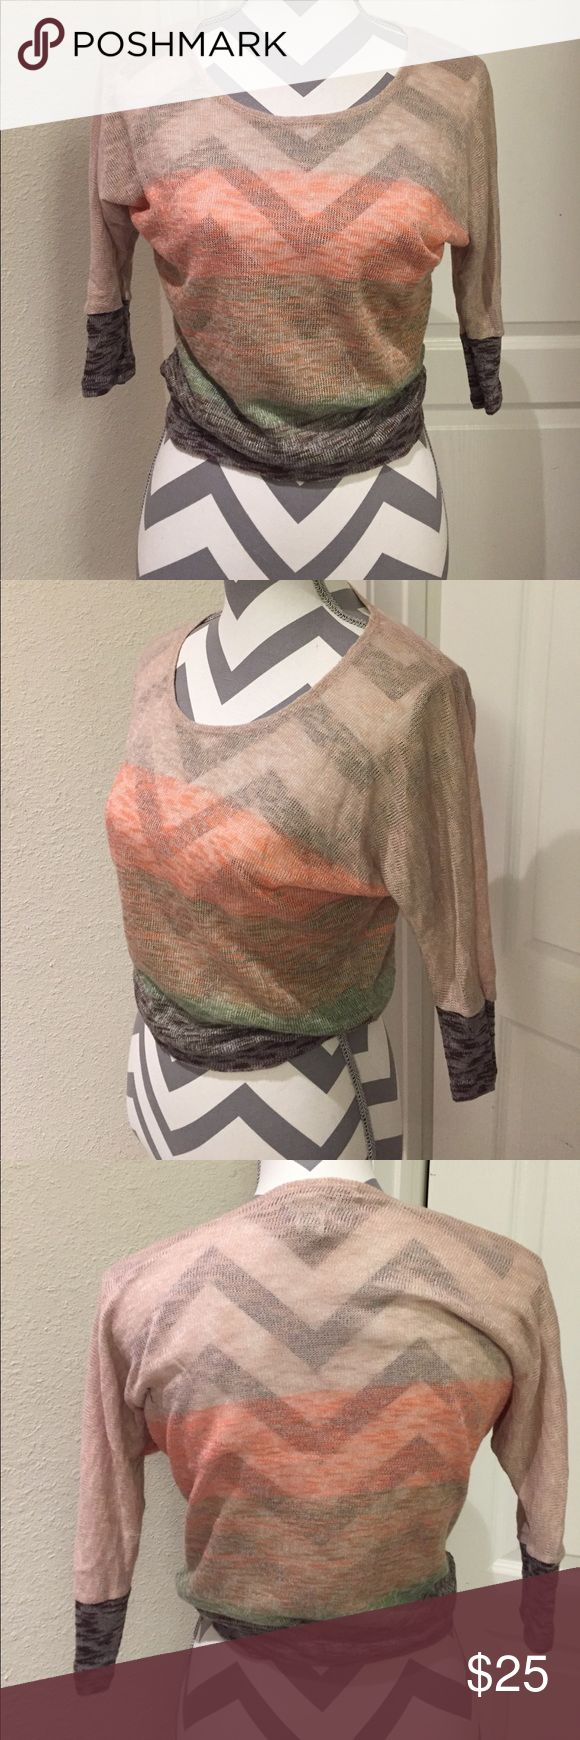 American Rag sheer sweater top A 3/4 sleeve, sheer sweater shirt with vintage tan, orange, green, and brown tones. The shirt is slouchy but gathers at a band at the waist giving a very retro silhouette. Barely worn, great condition. American Rag Tops Tees - Long Sleeve